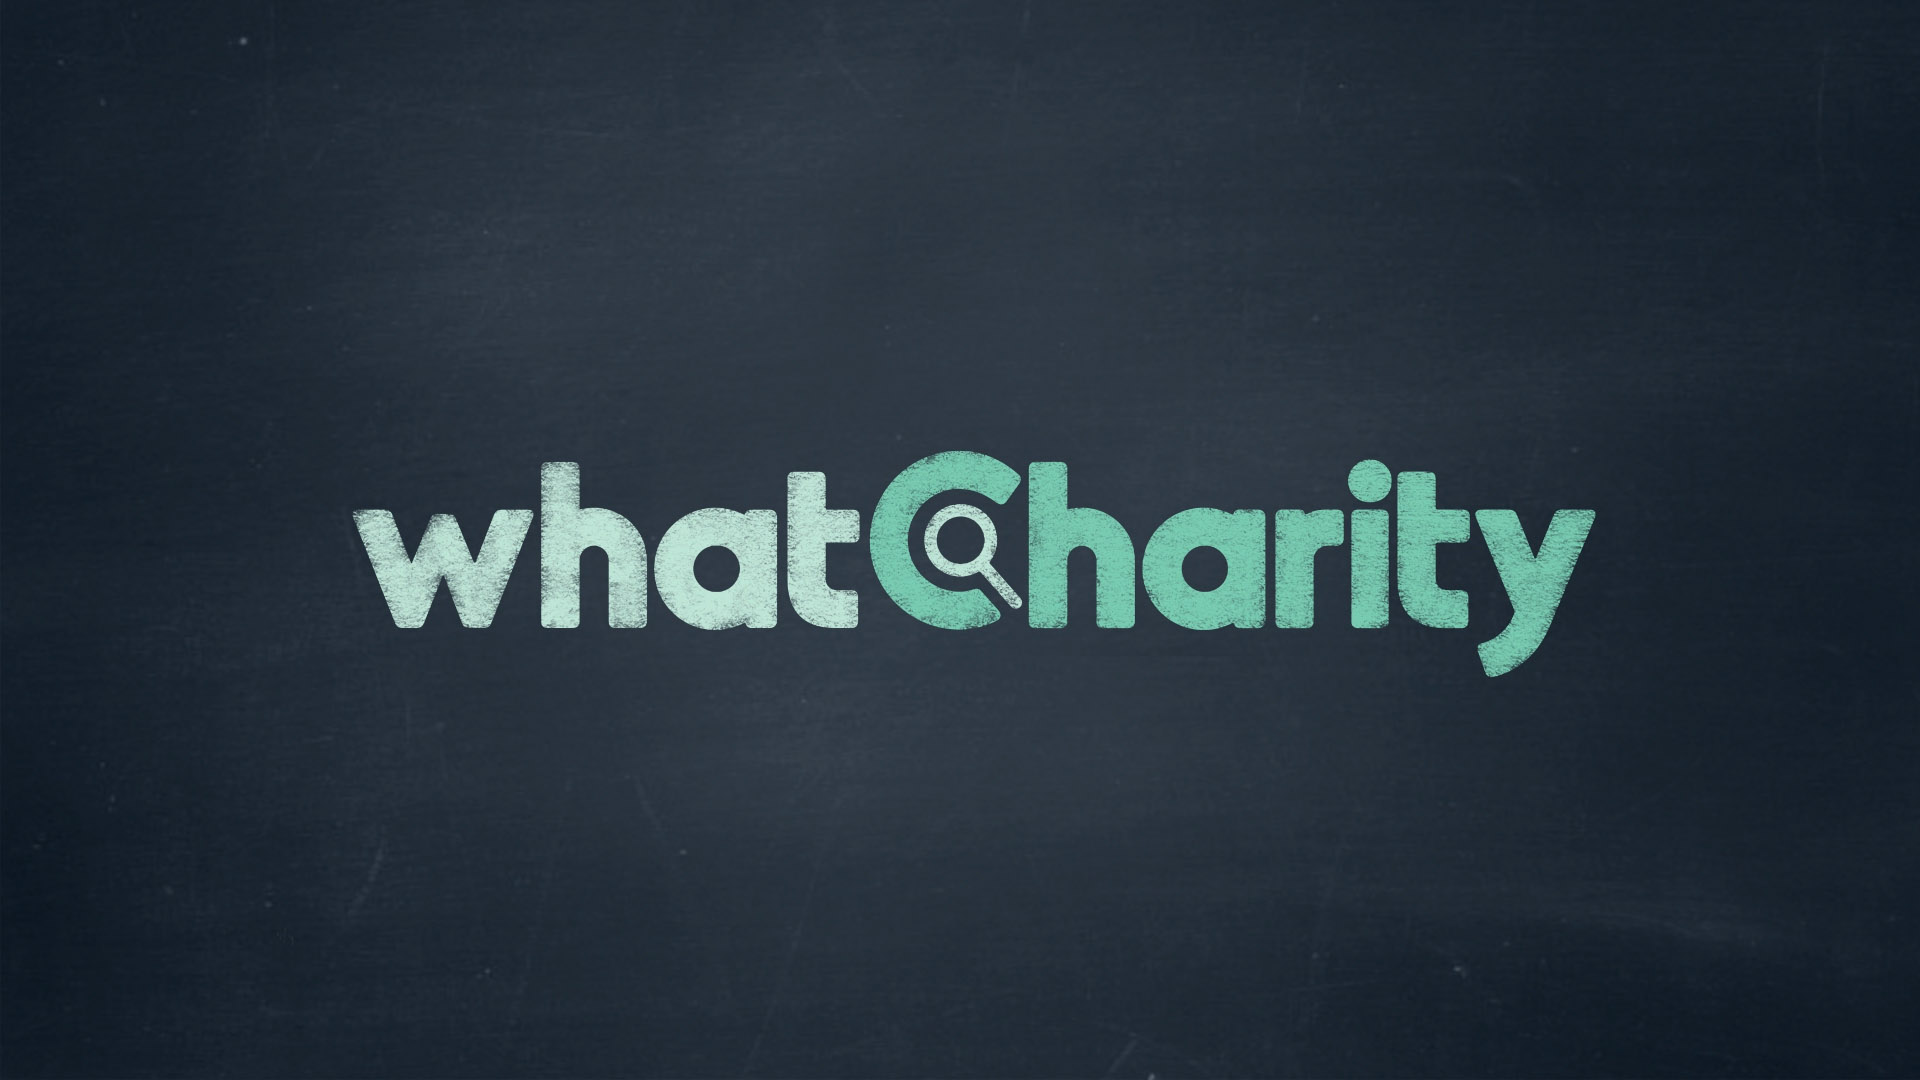 Whatcharity screengrab 001